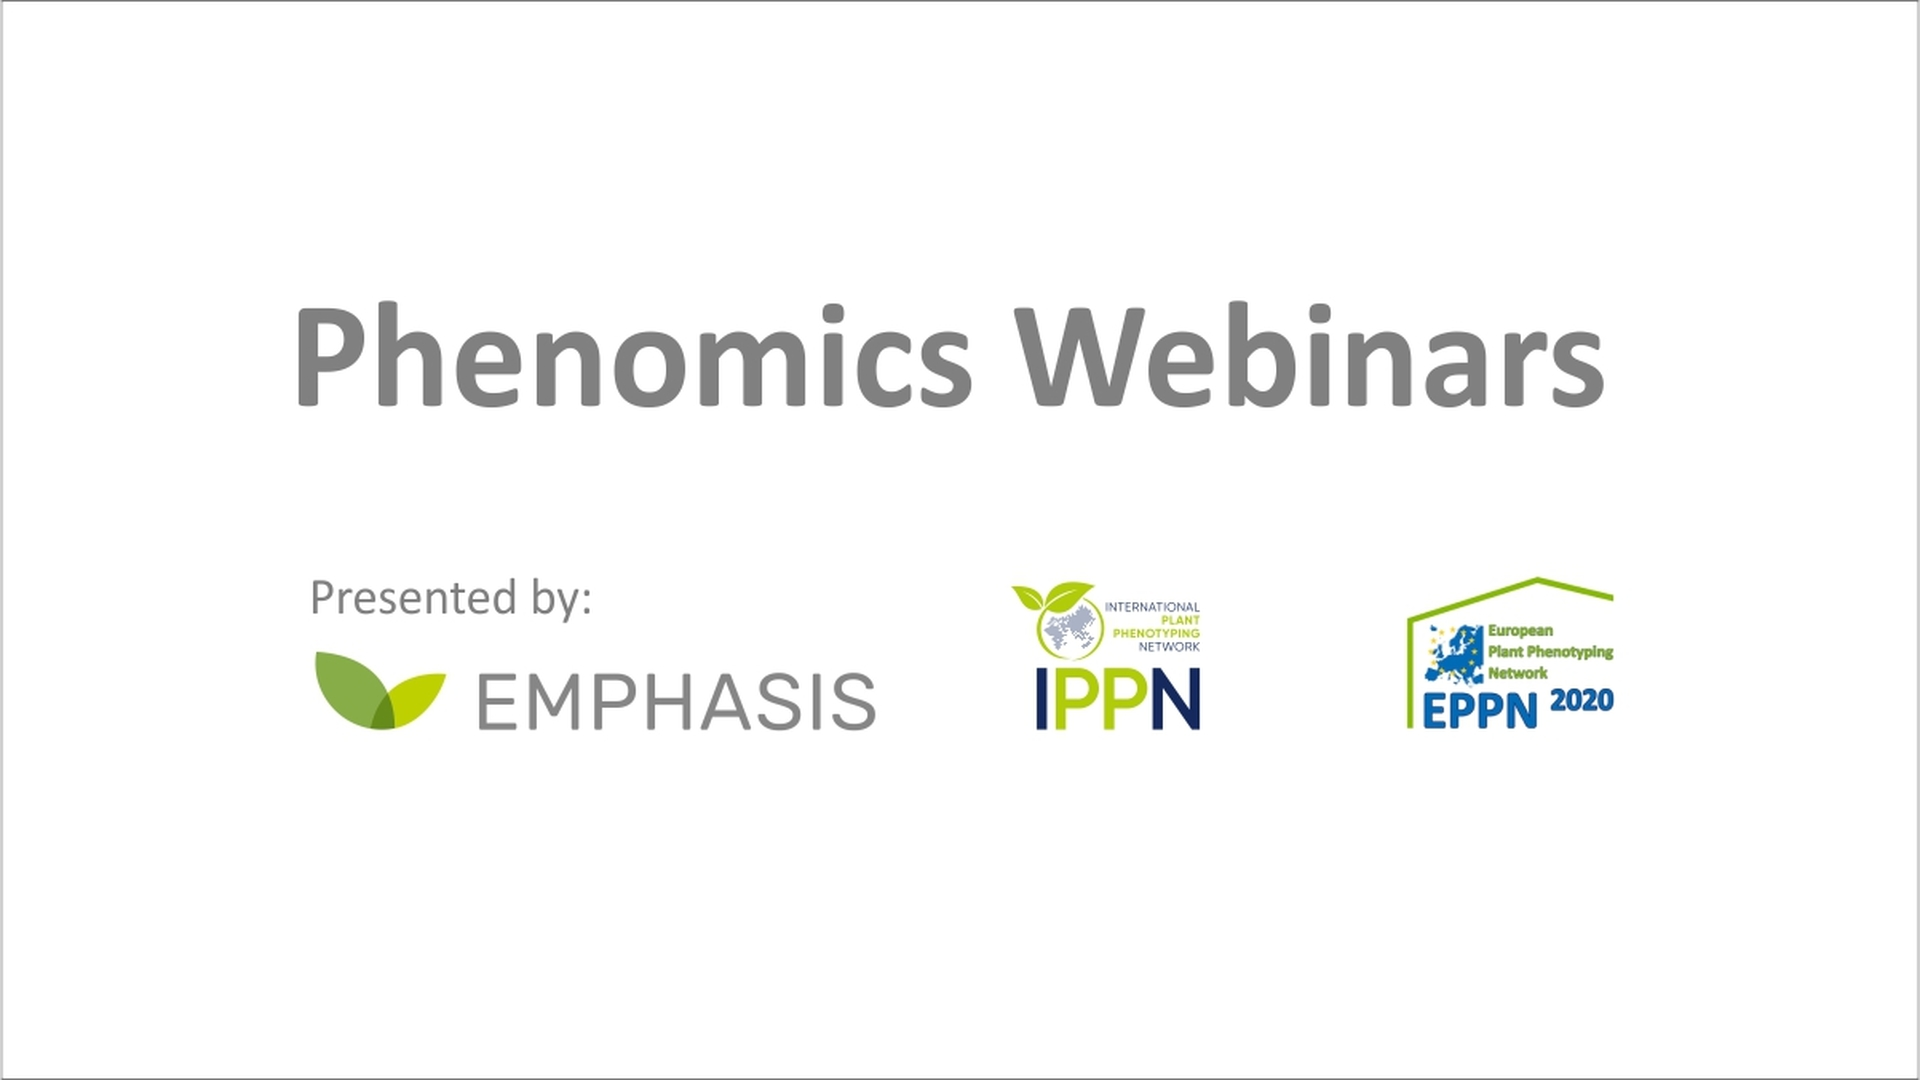 Phenomics Webinars